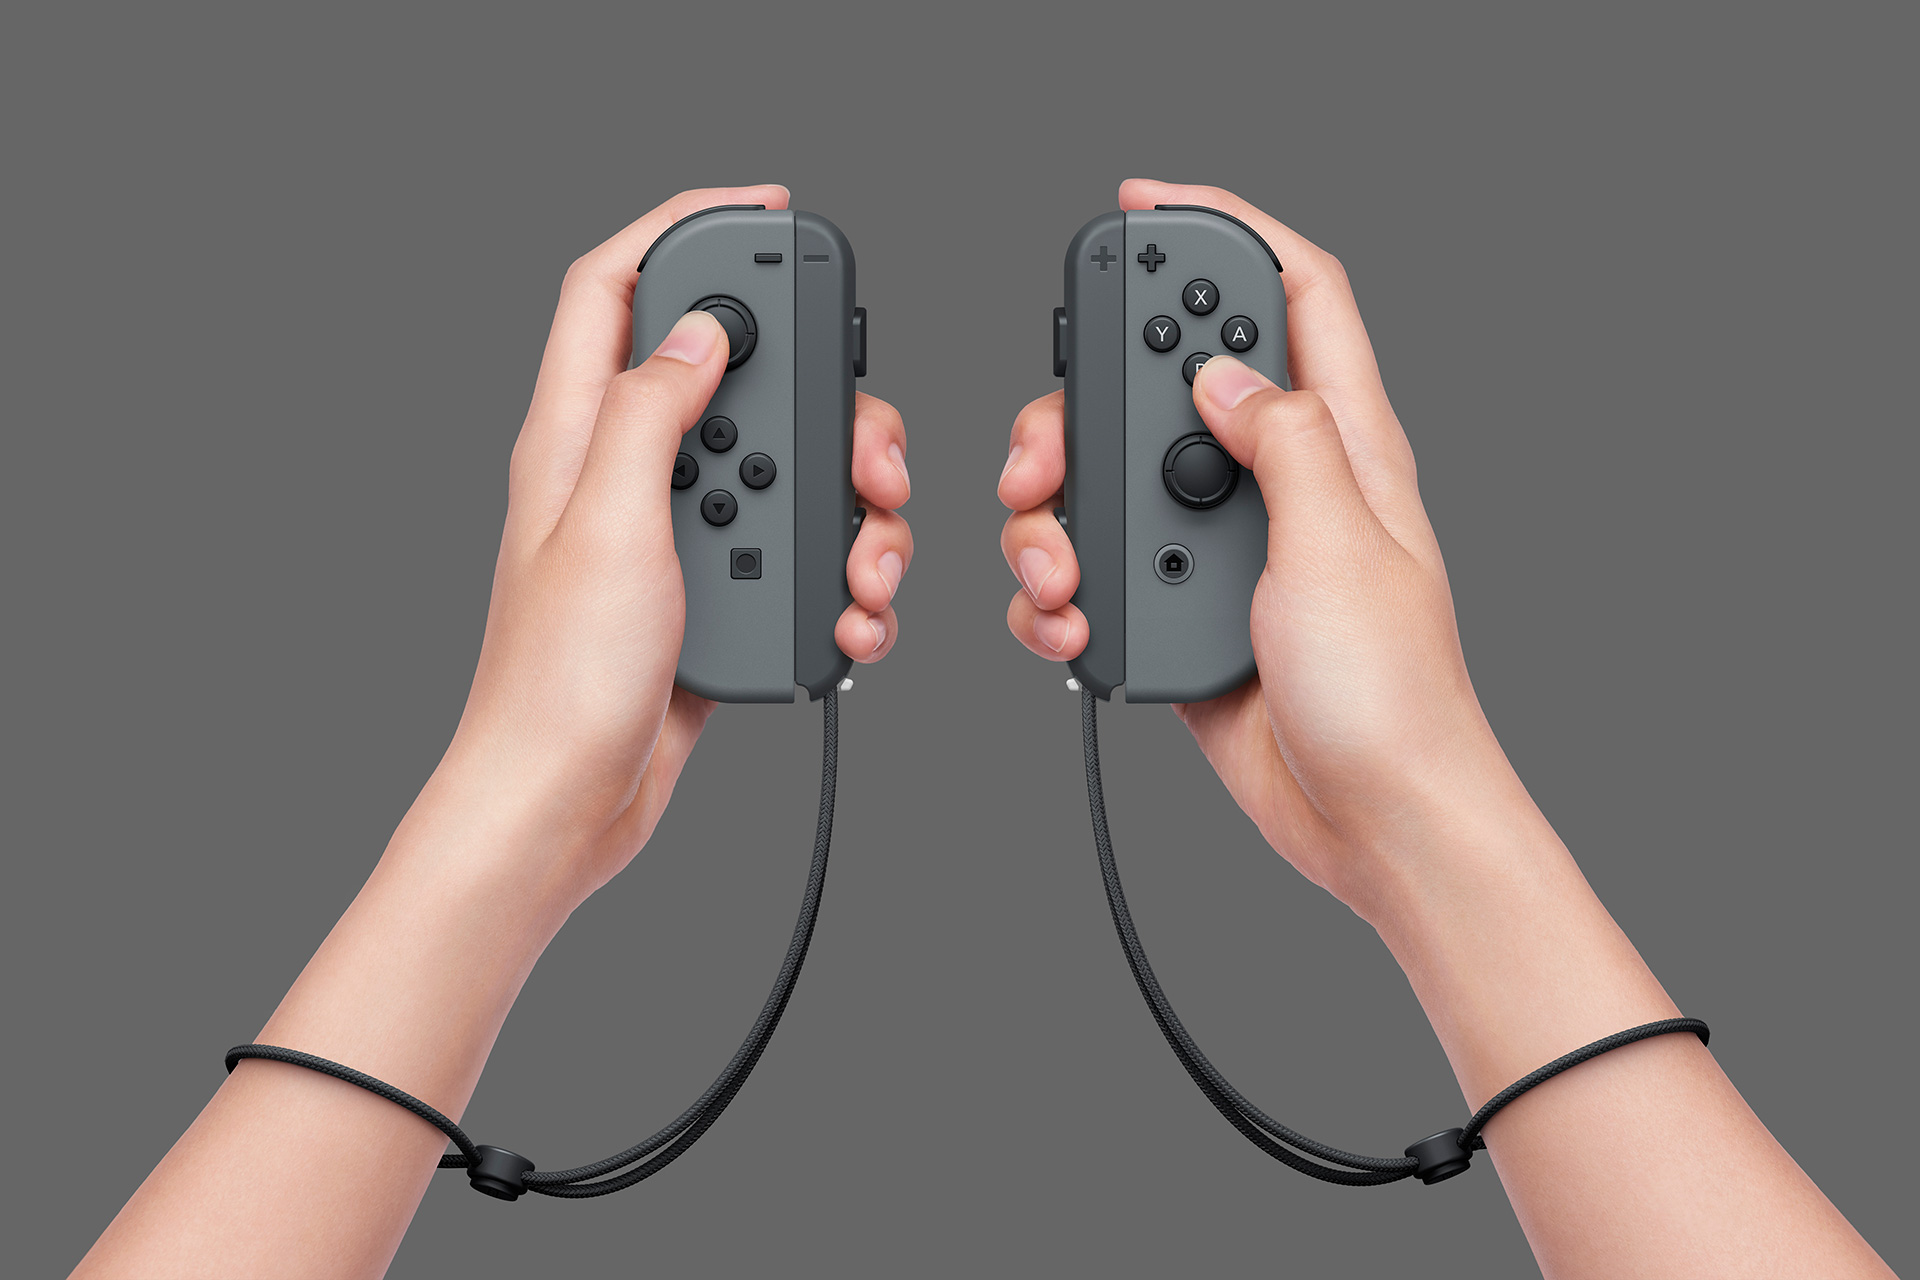 joy-con issues with wrist straps